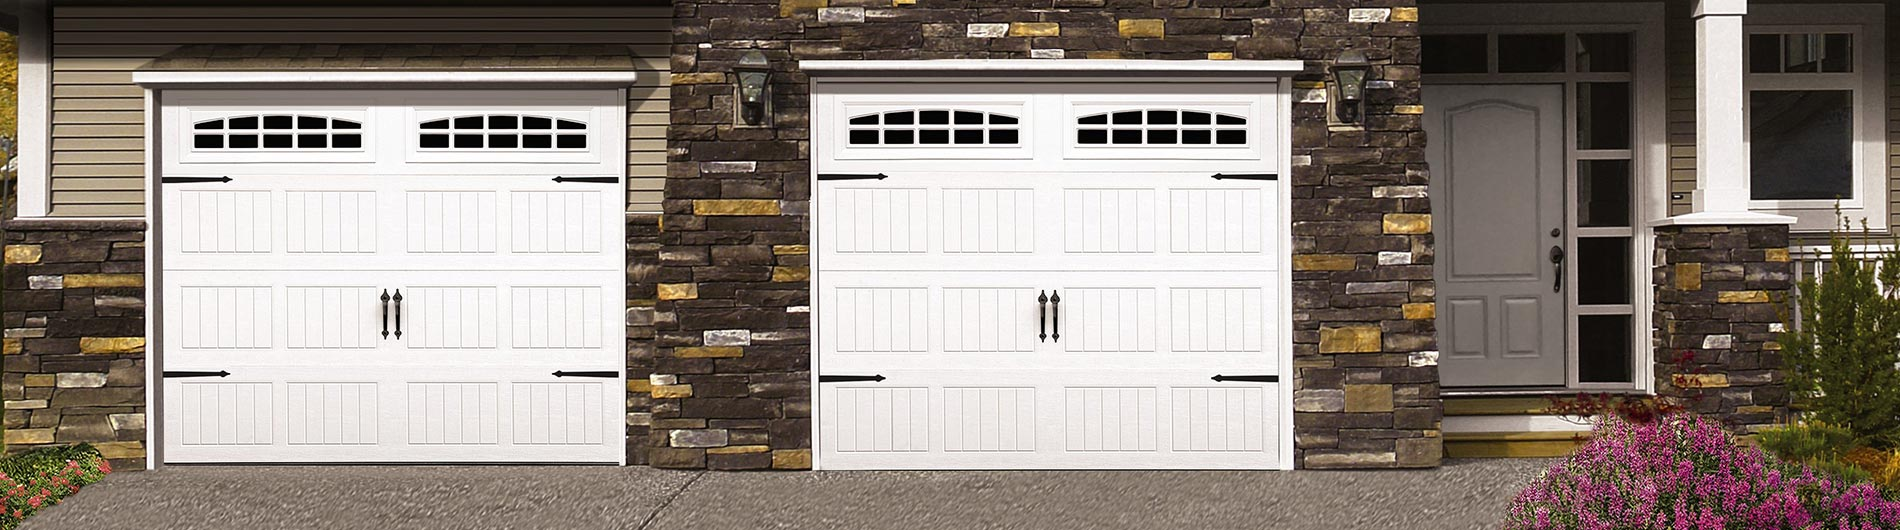 Wayne dalton 8000 garage door parts list dandk organizer for Wayne dalton garage doors